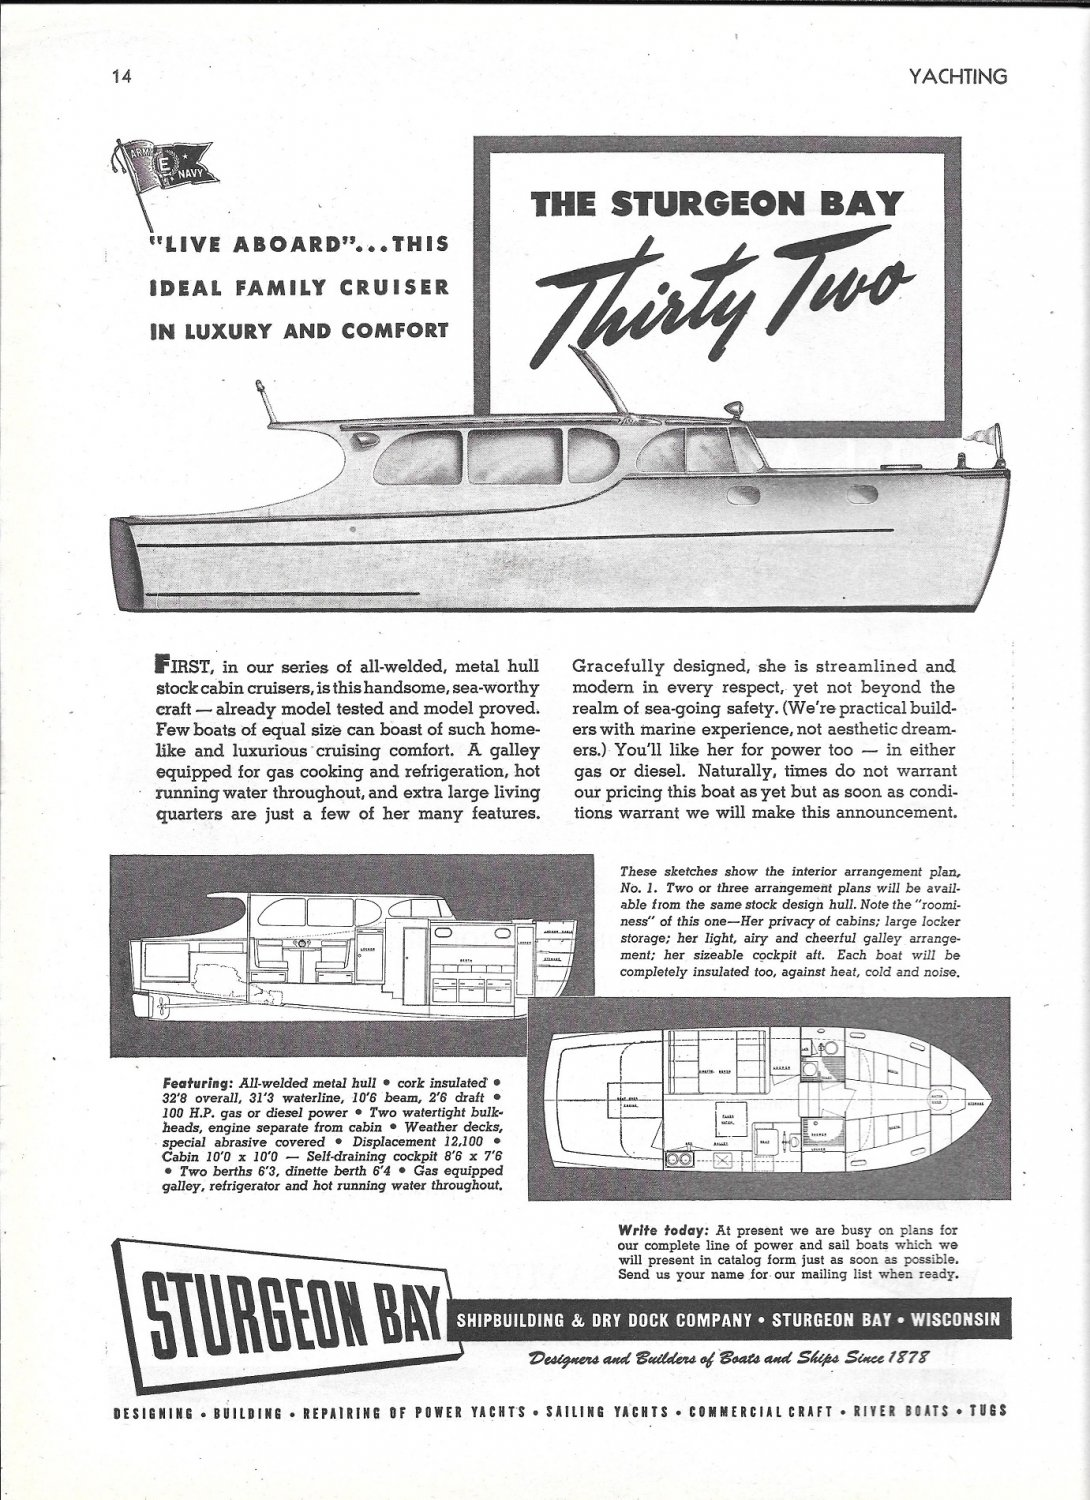 1944 Sturgeon Bay 32' Yacht Ad